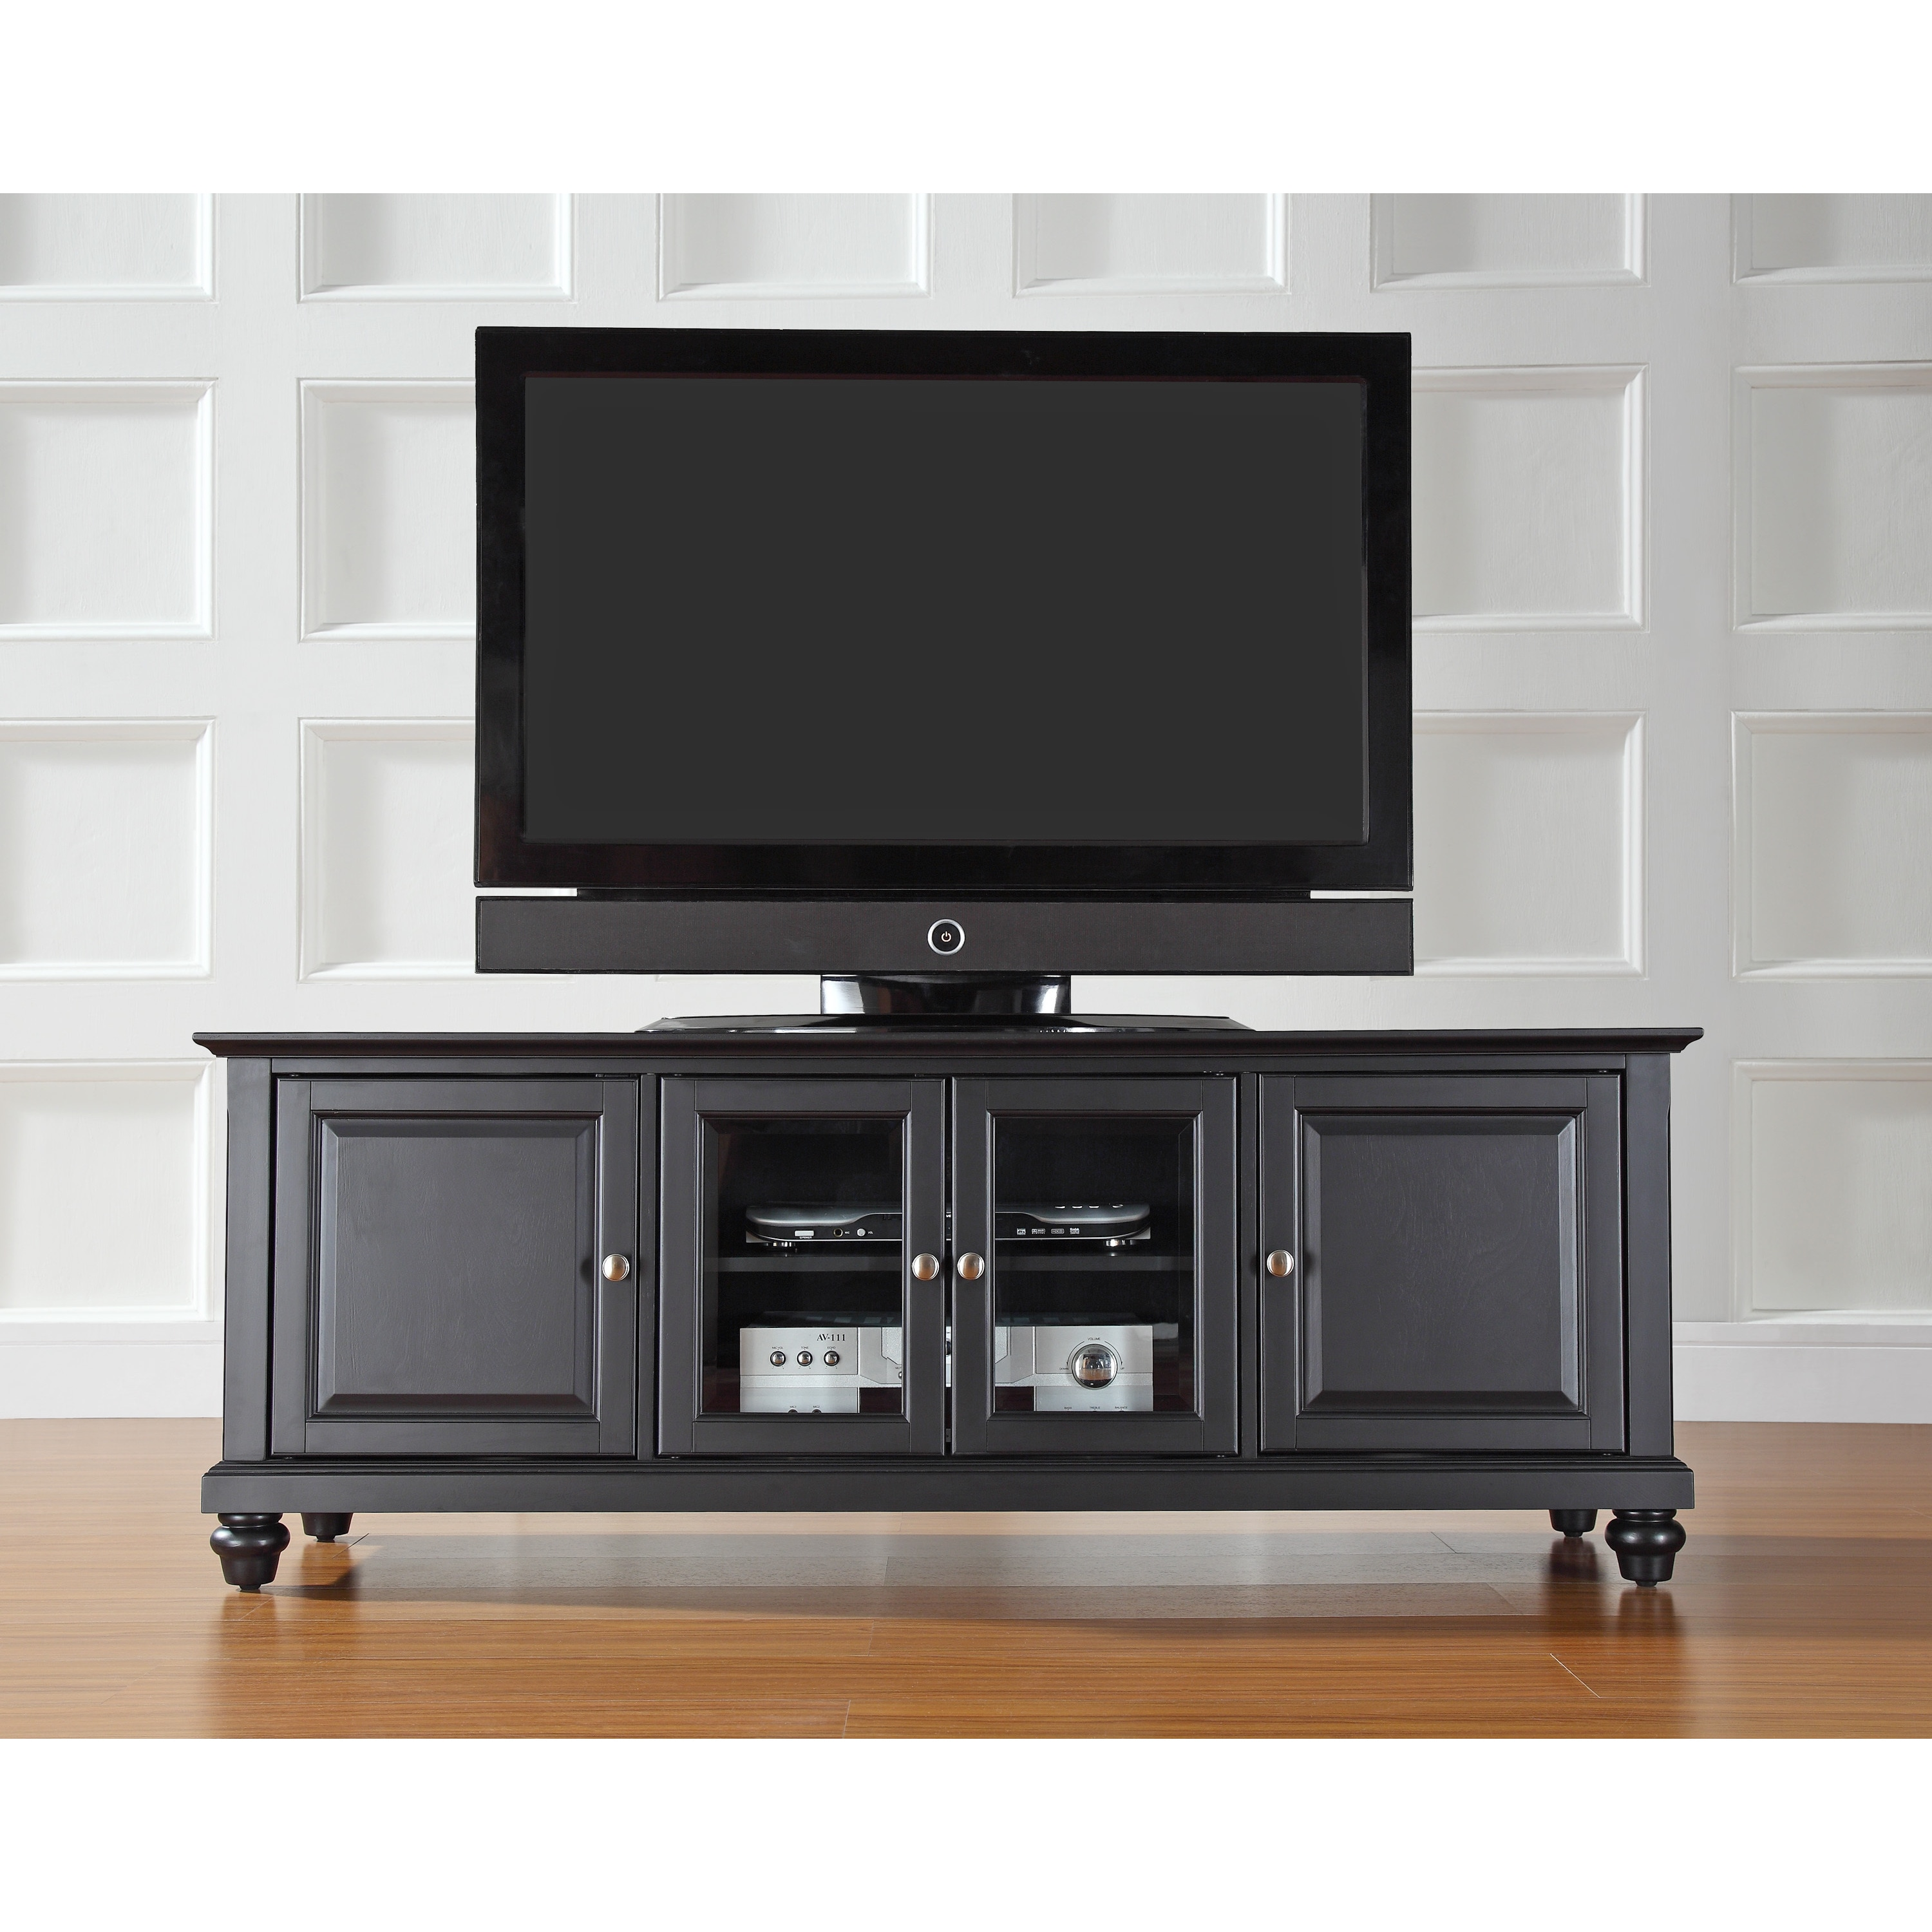 63e735d5a097 Shop Cambridge Black Finish Wood 60-inch Low Profile TV Stand - Free  Shipping Today - Overstock - 15315620